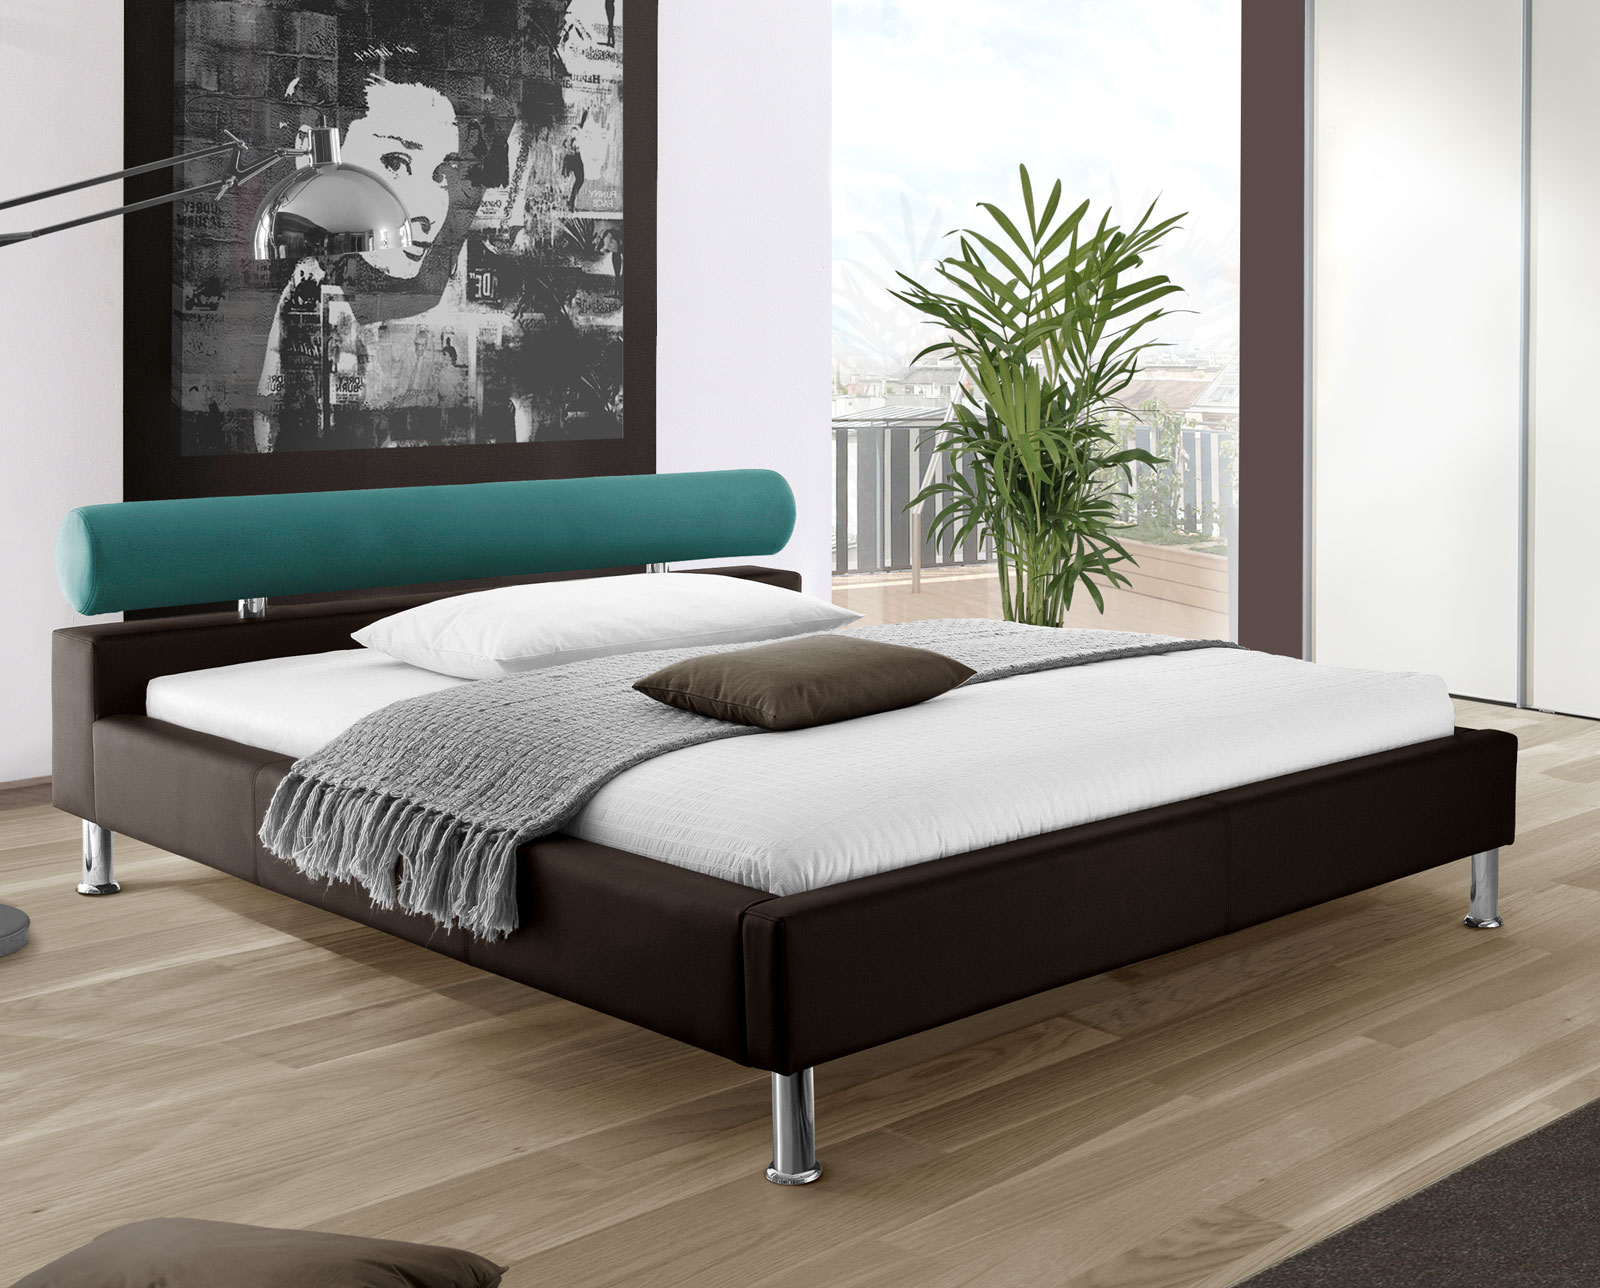 bett aus kunstleder mit farbiger nackenrolle basildon. Black Bedroom Furniture Sets. Home Design Ideas